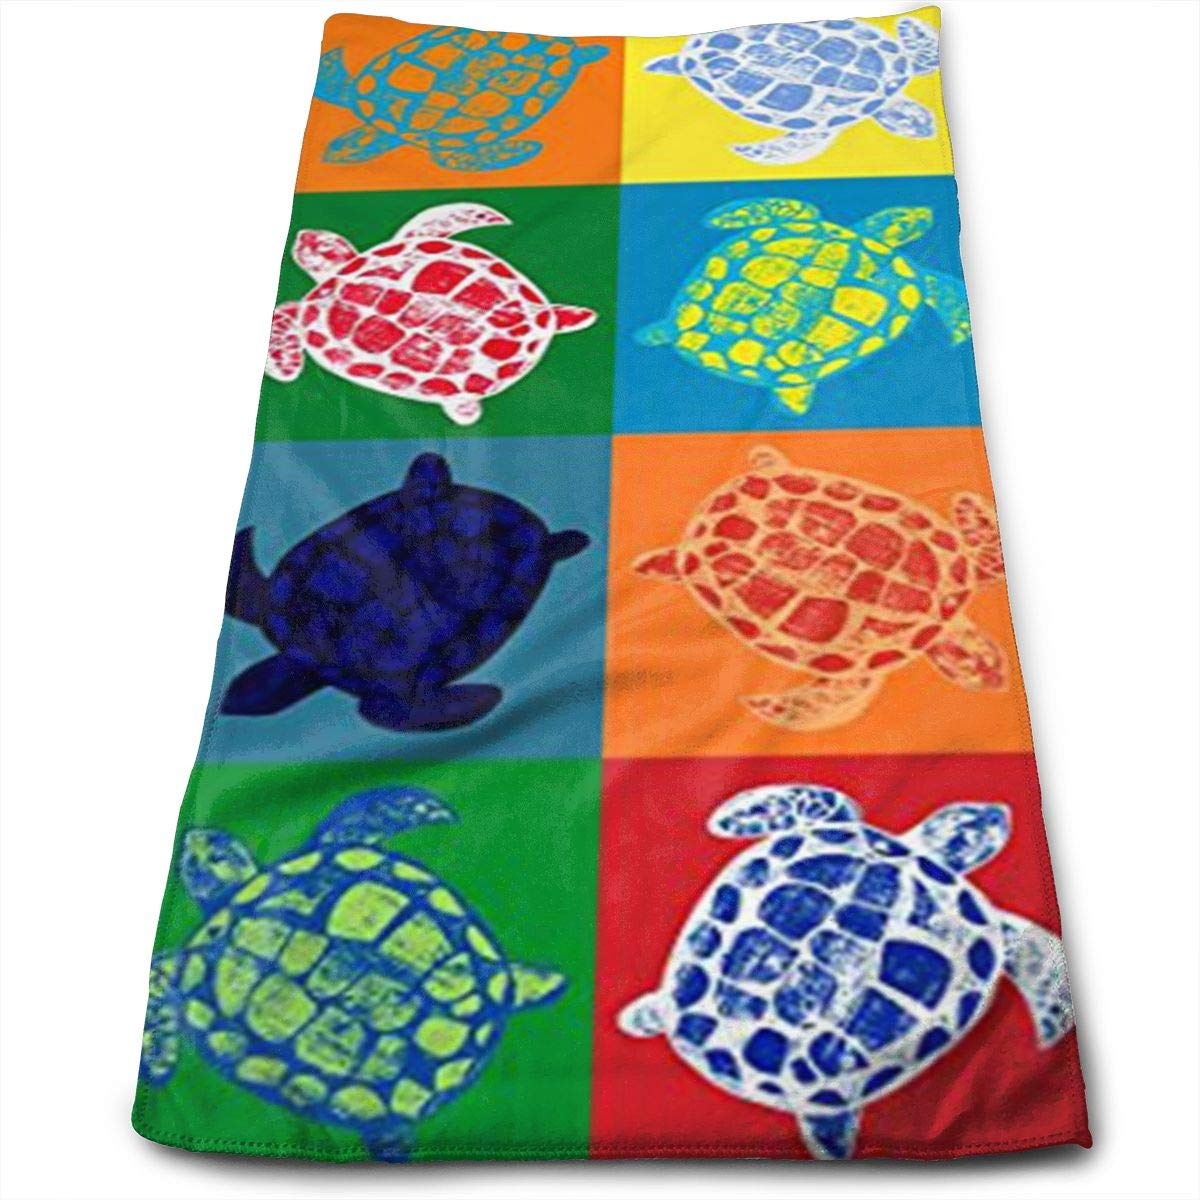 Colorful Sea Turtle Microfiber Towel,Perfect Sports & Travel &Beach Towel. Fast Drying - Super Absorbent - Antibacterial-Ultra Compact.